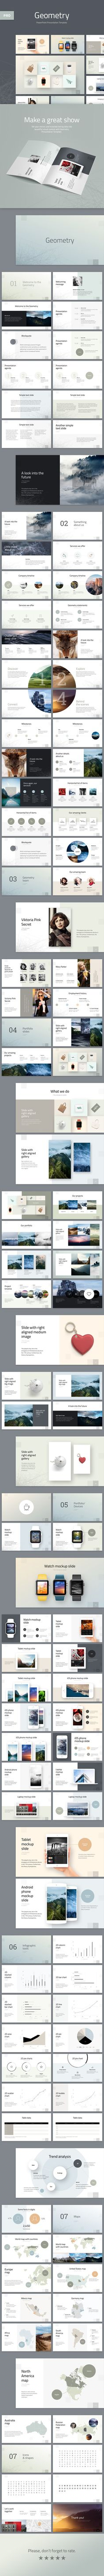 Geometry Modern PowerPoint Presentation Template - Creative PowerPoint Templates